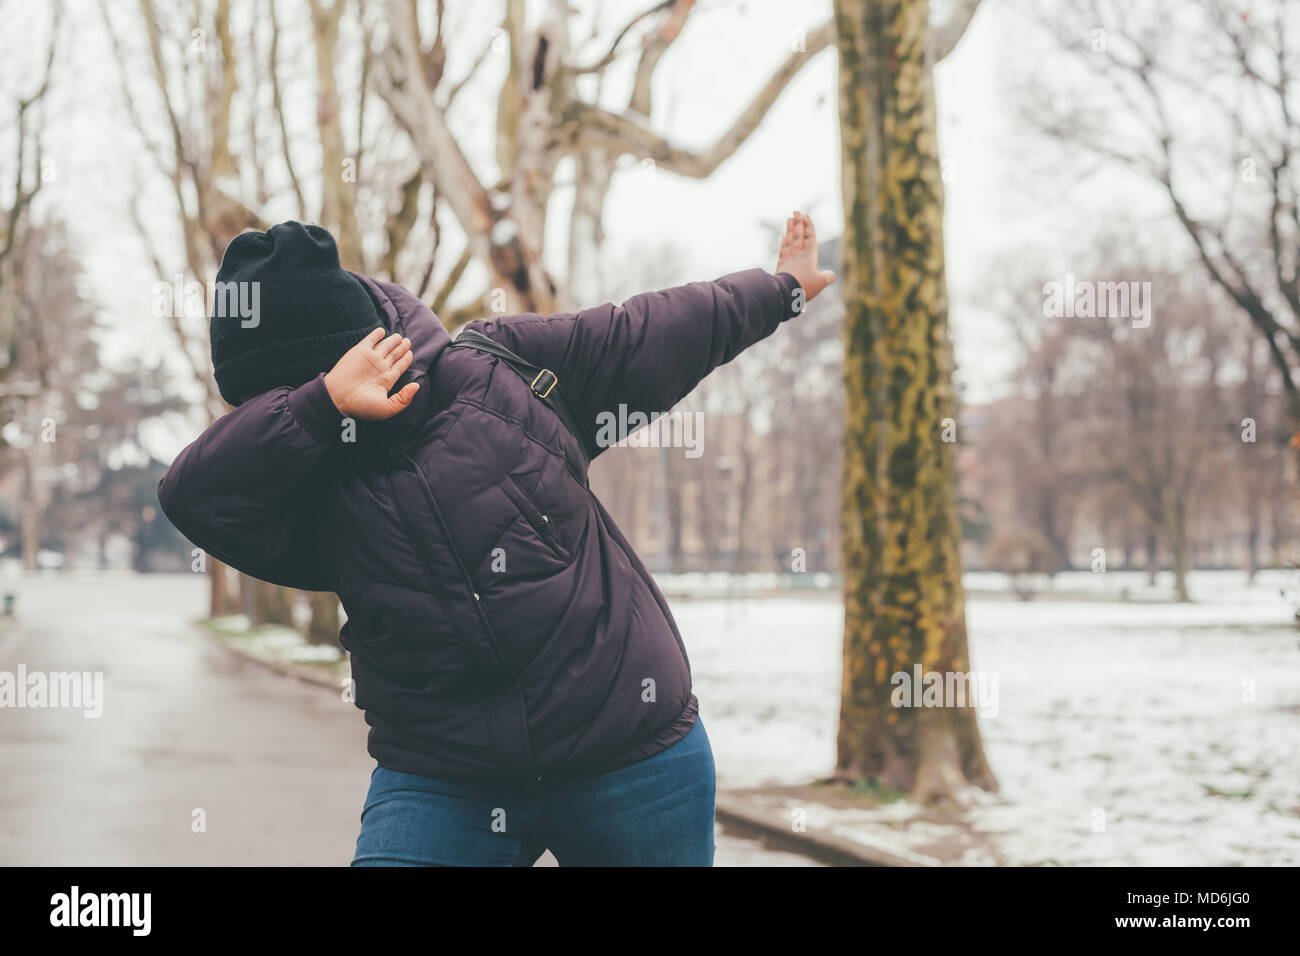 young beautiful woman outdoor doing dab outdoor - dancing, gesture